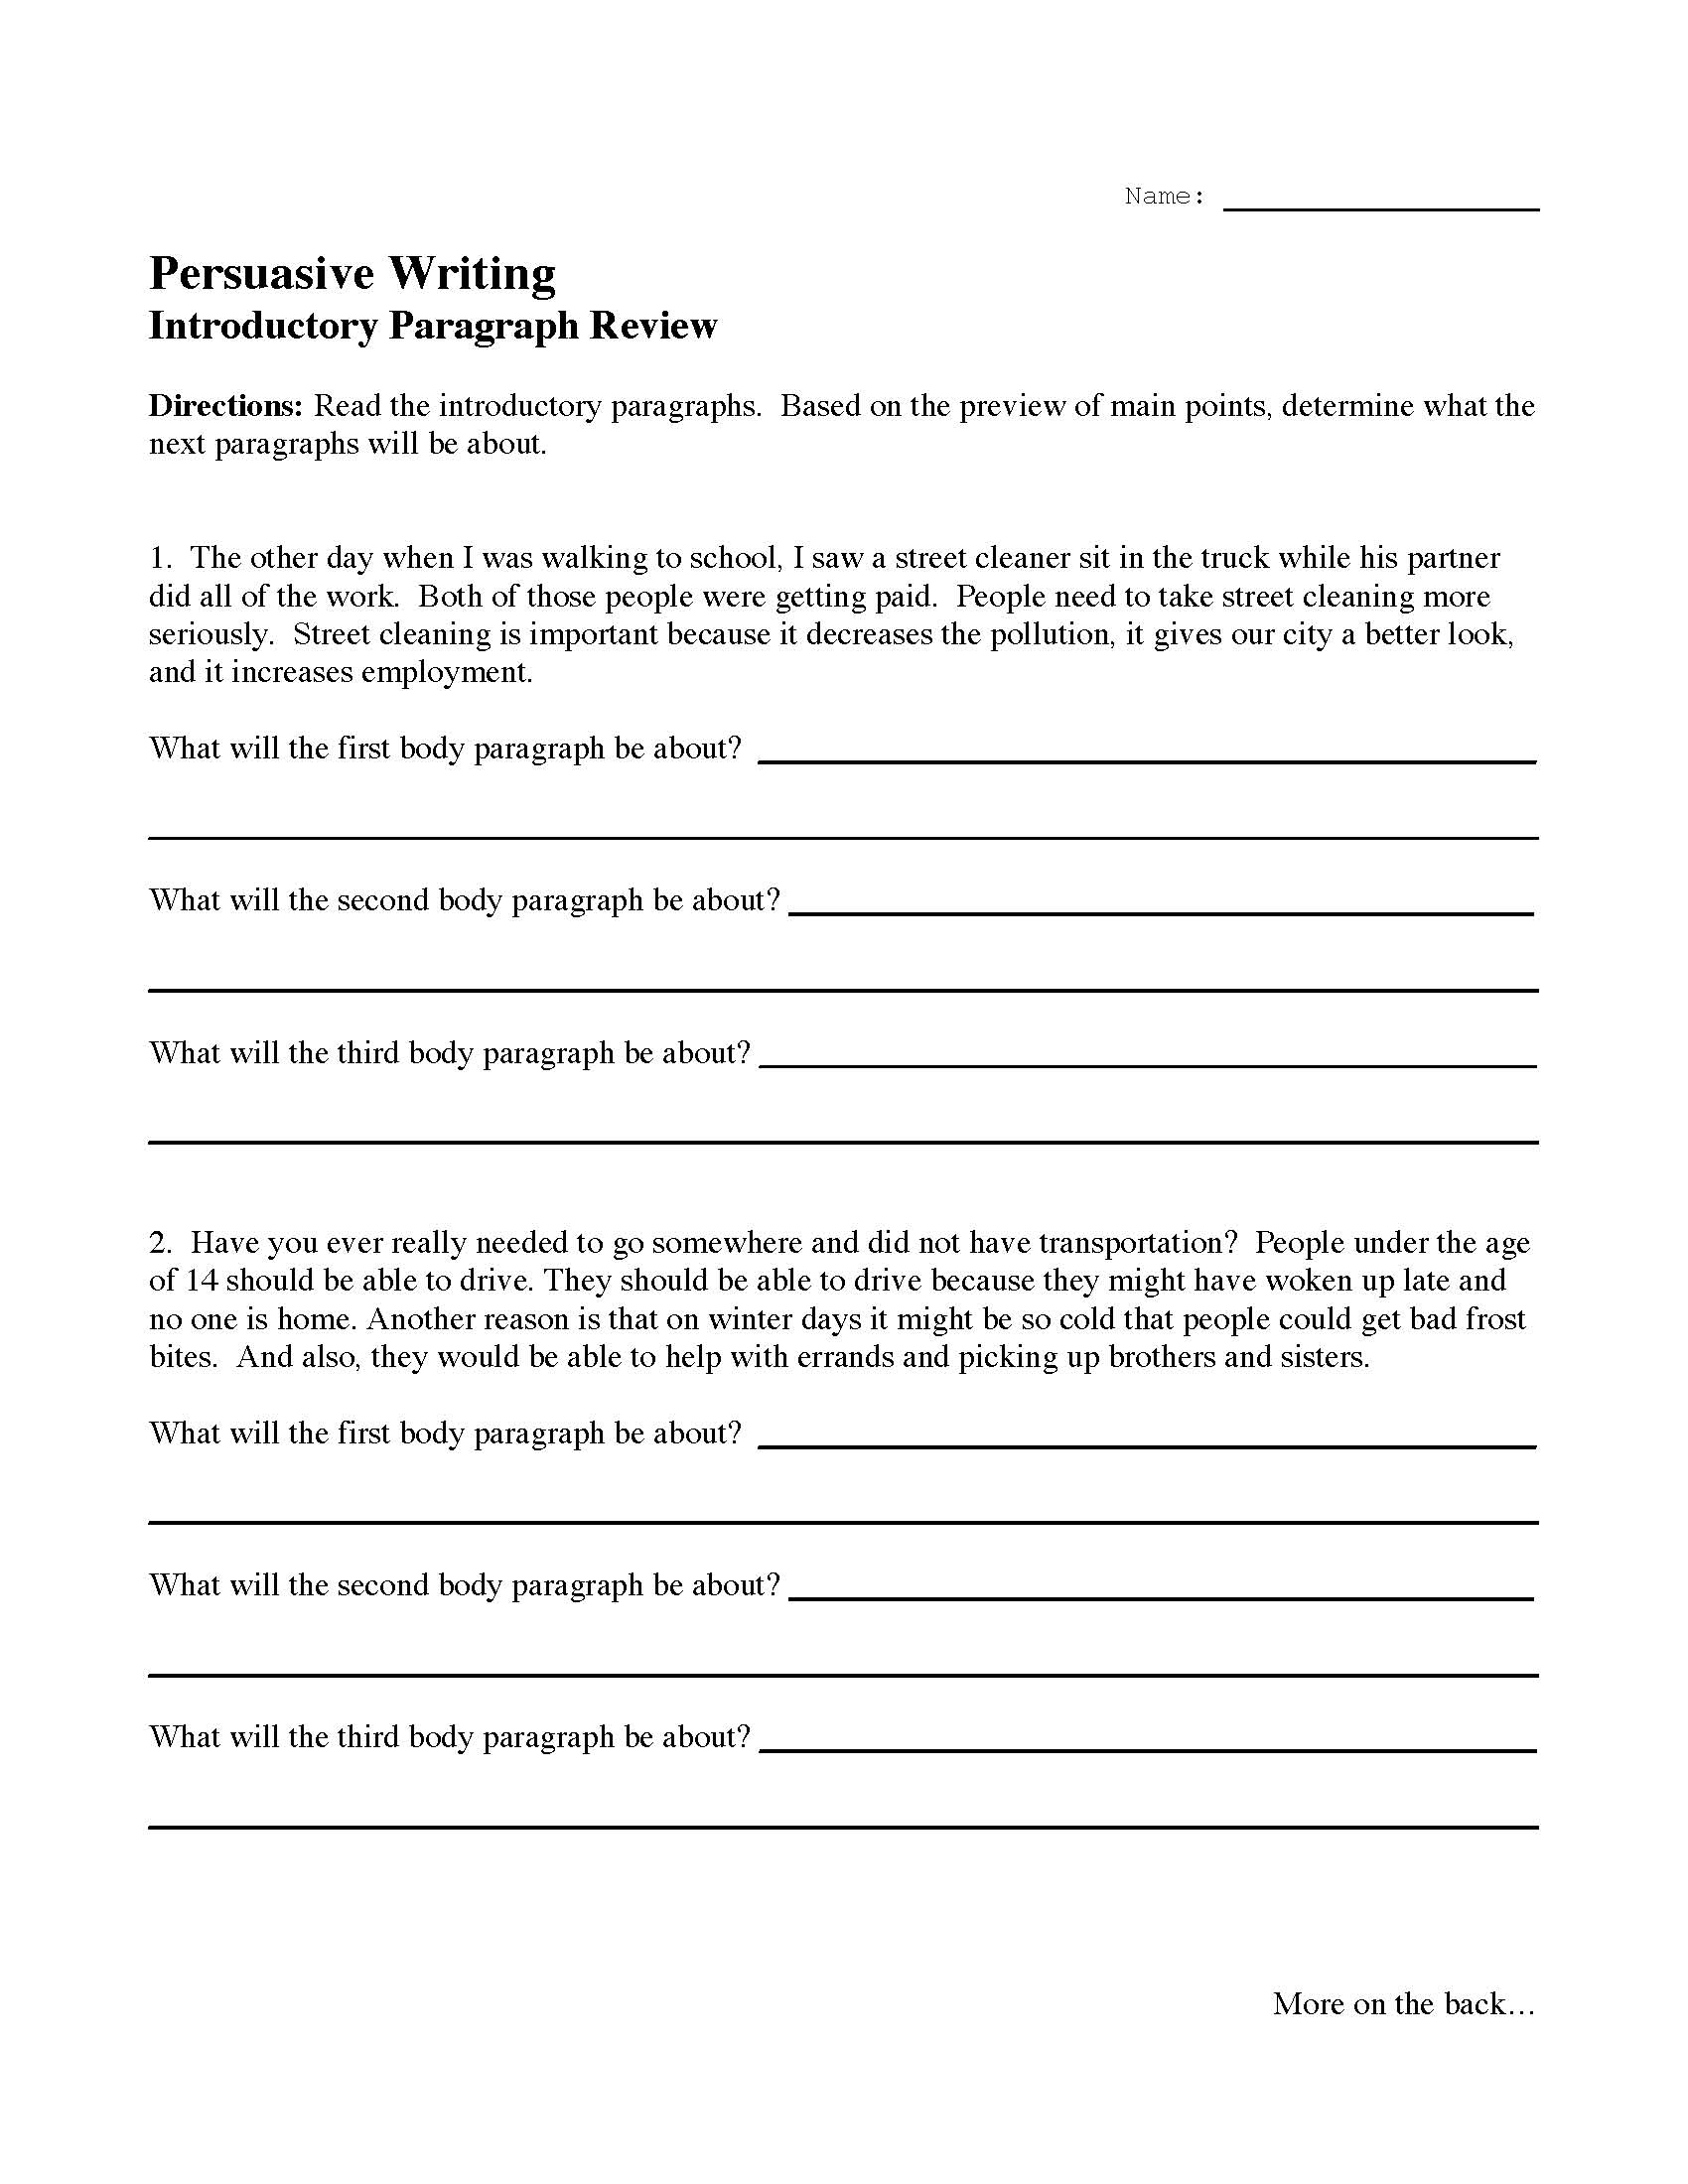 Introductory Paragraph Review Activity